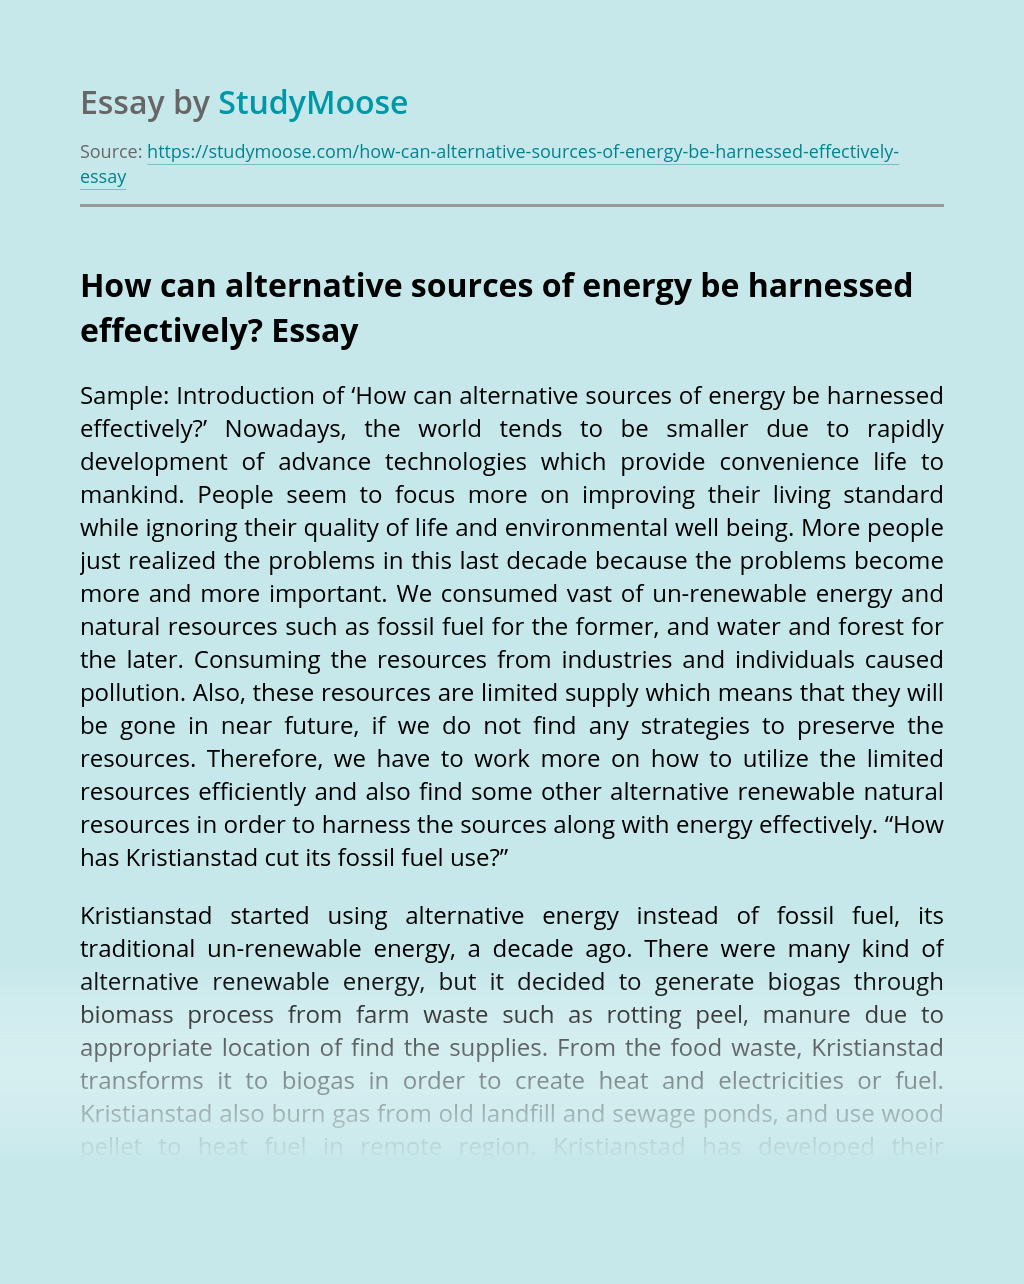 How Can Alternative Sources of Energy be Harnessed Effectively?